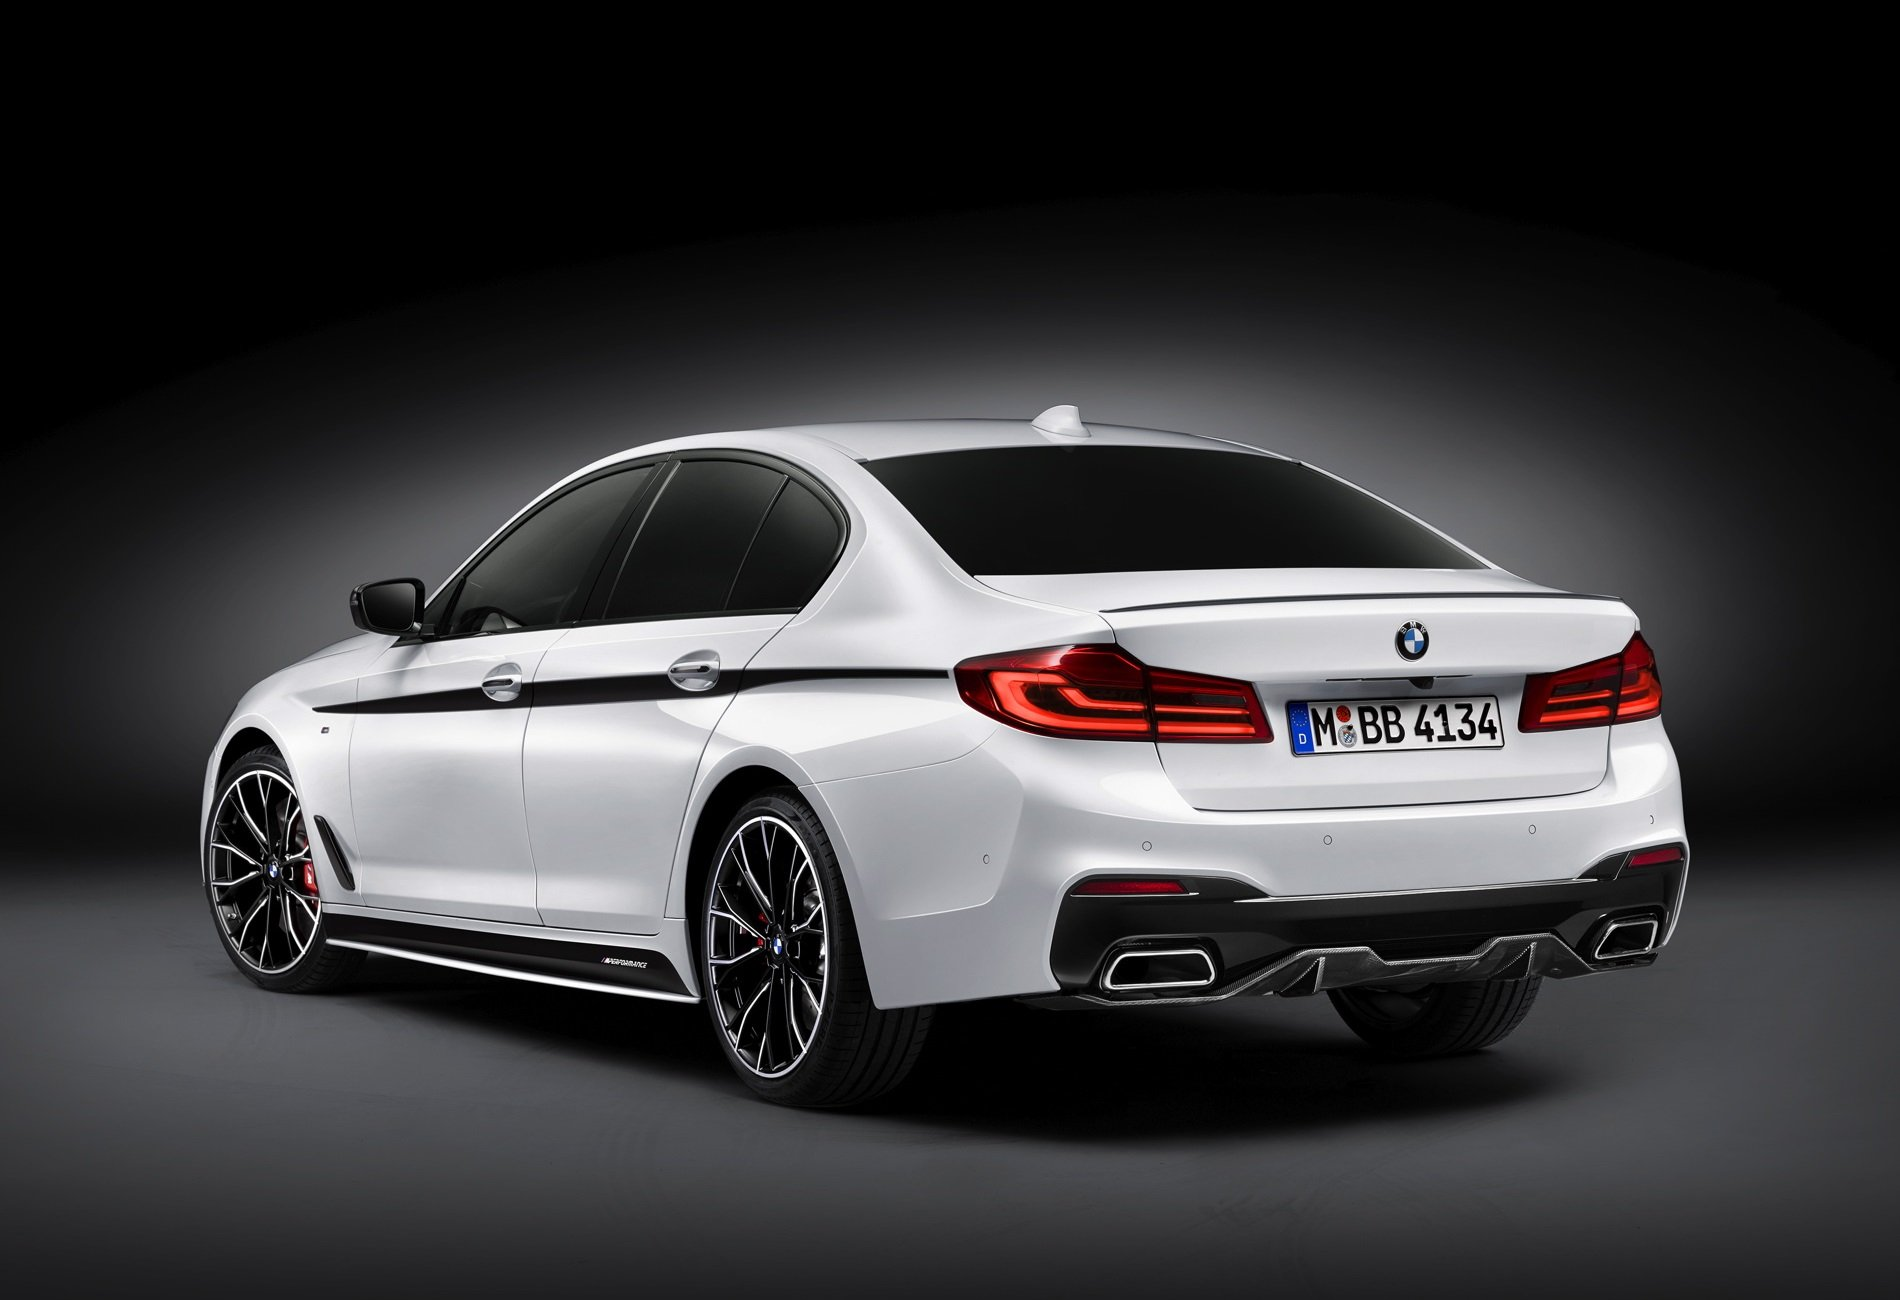 g30-bmw-5-series-m-performance-parts-22